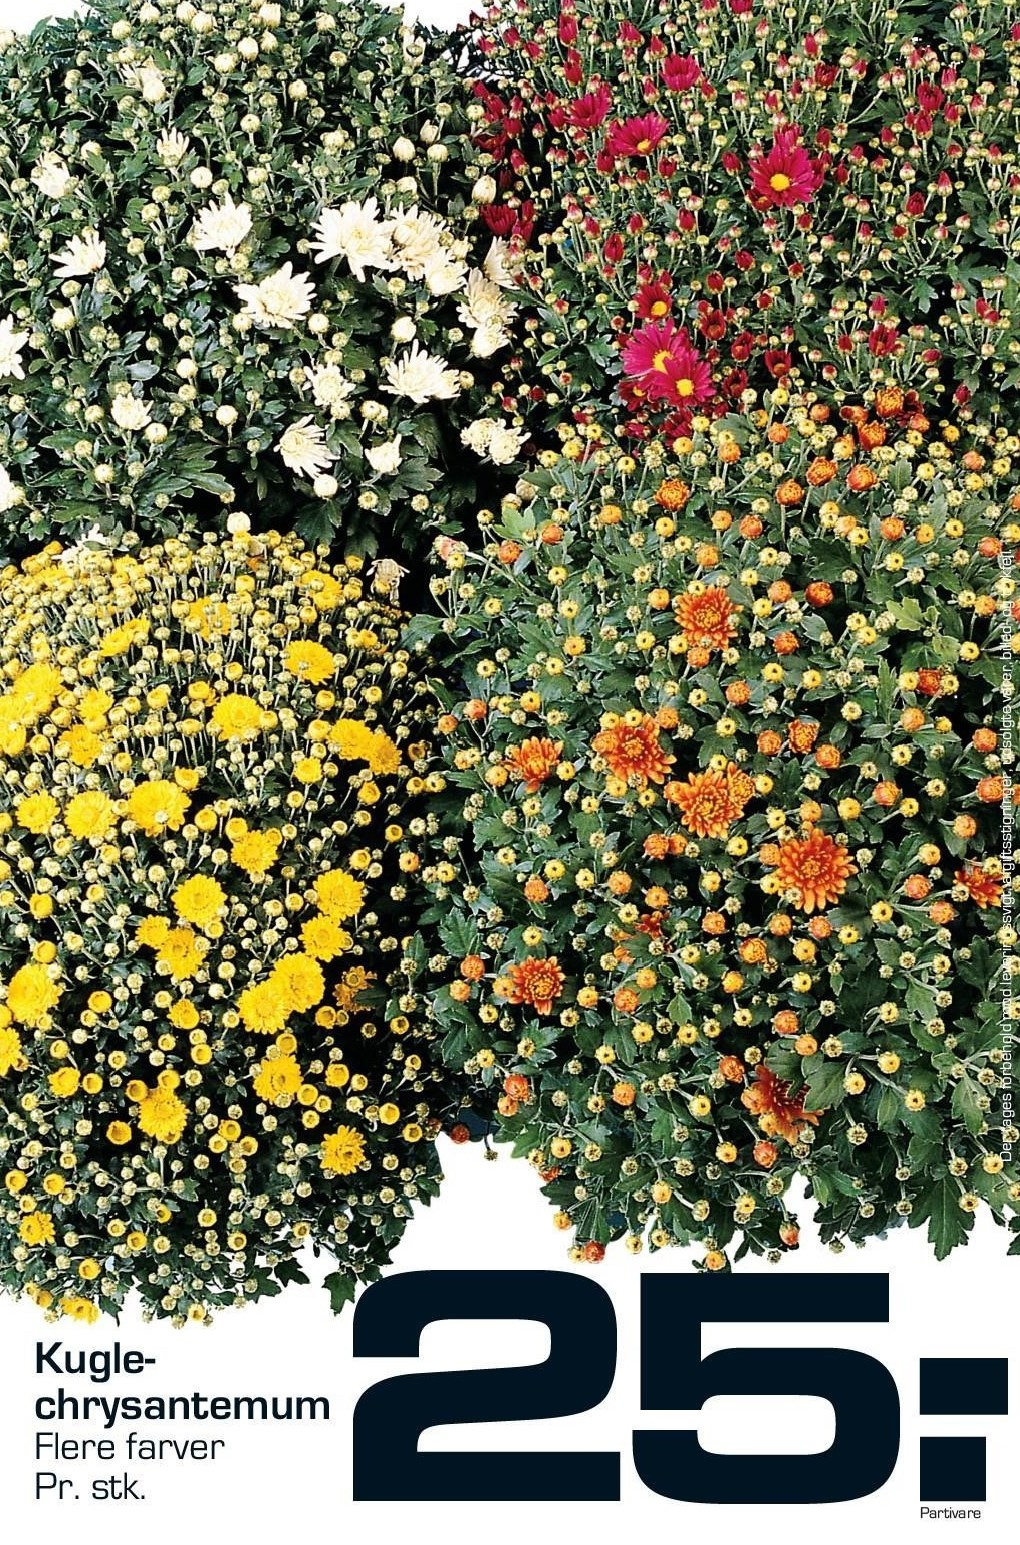 Kuglechrysanthemum